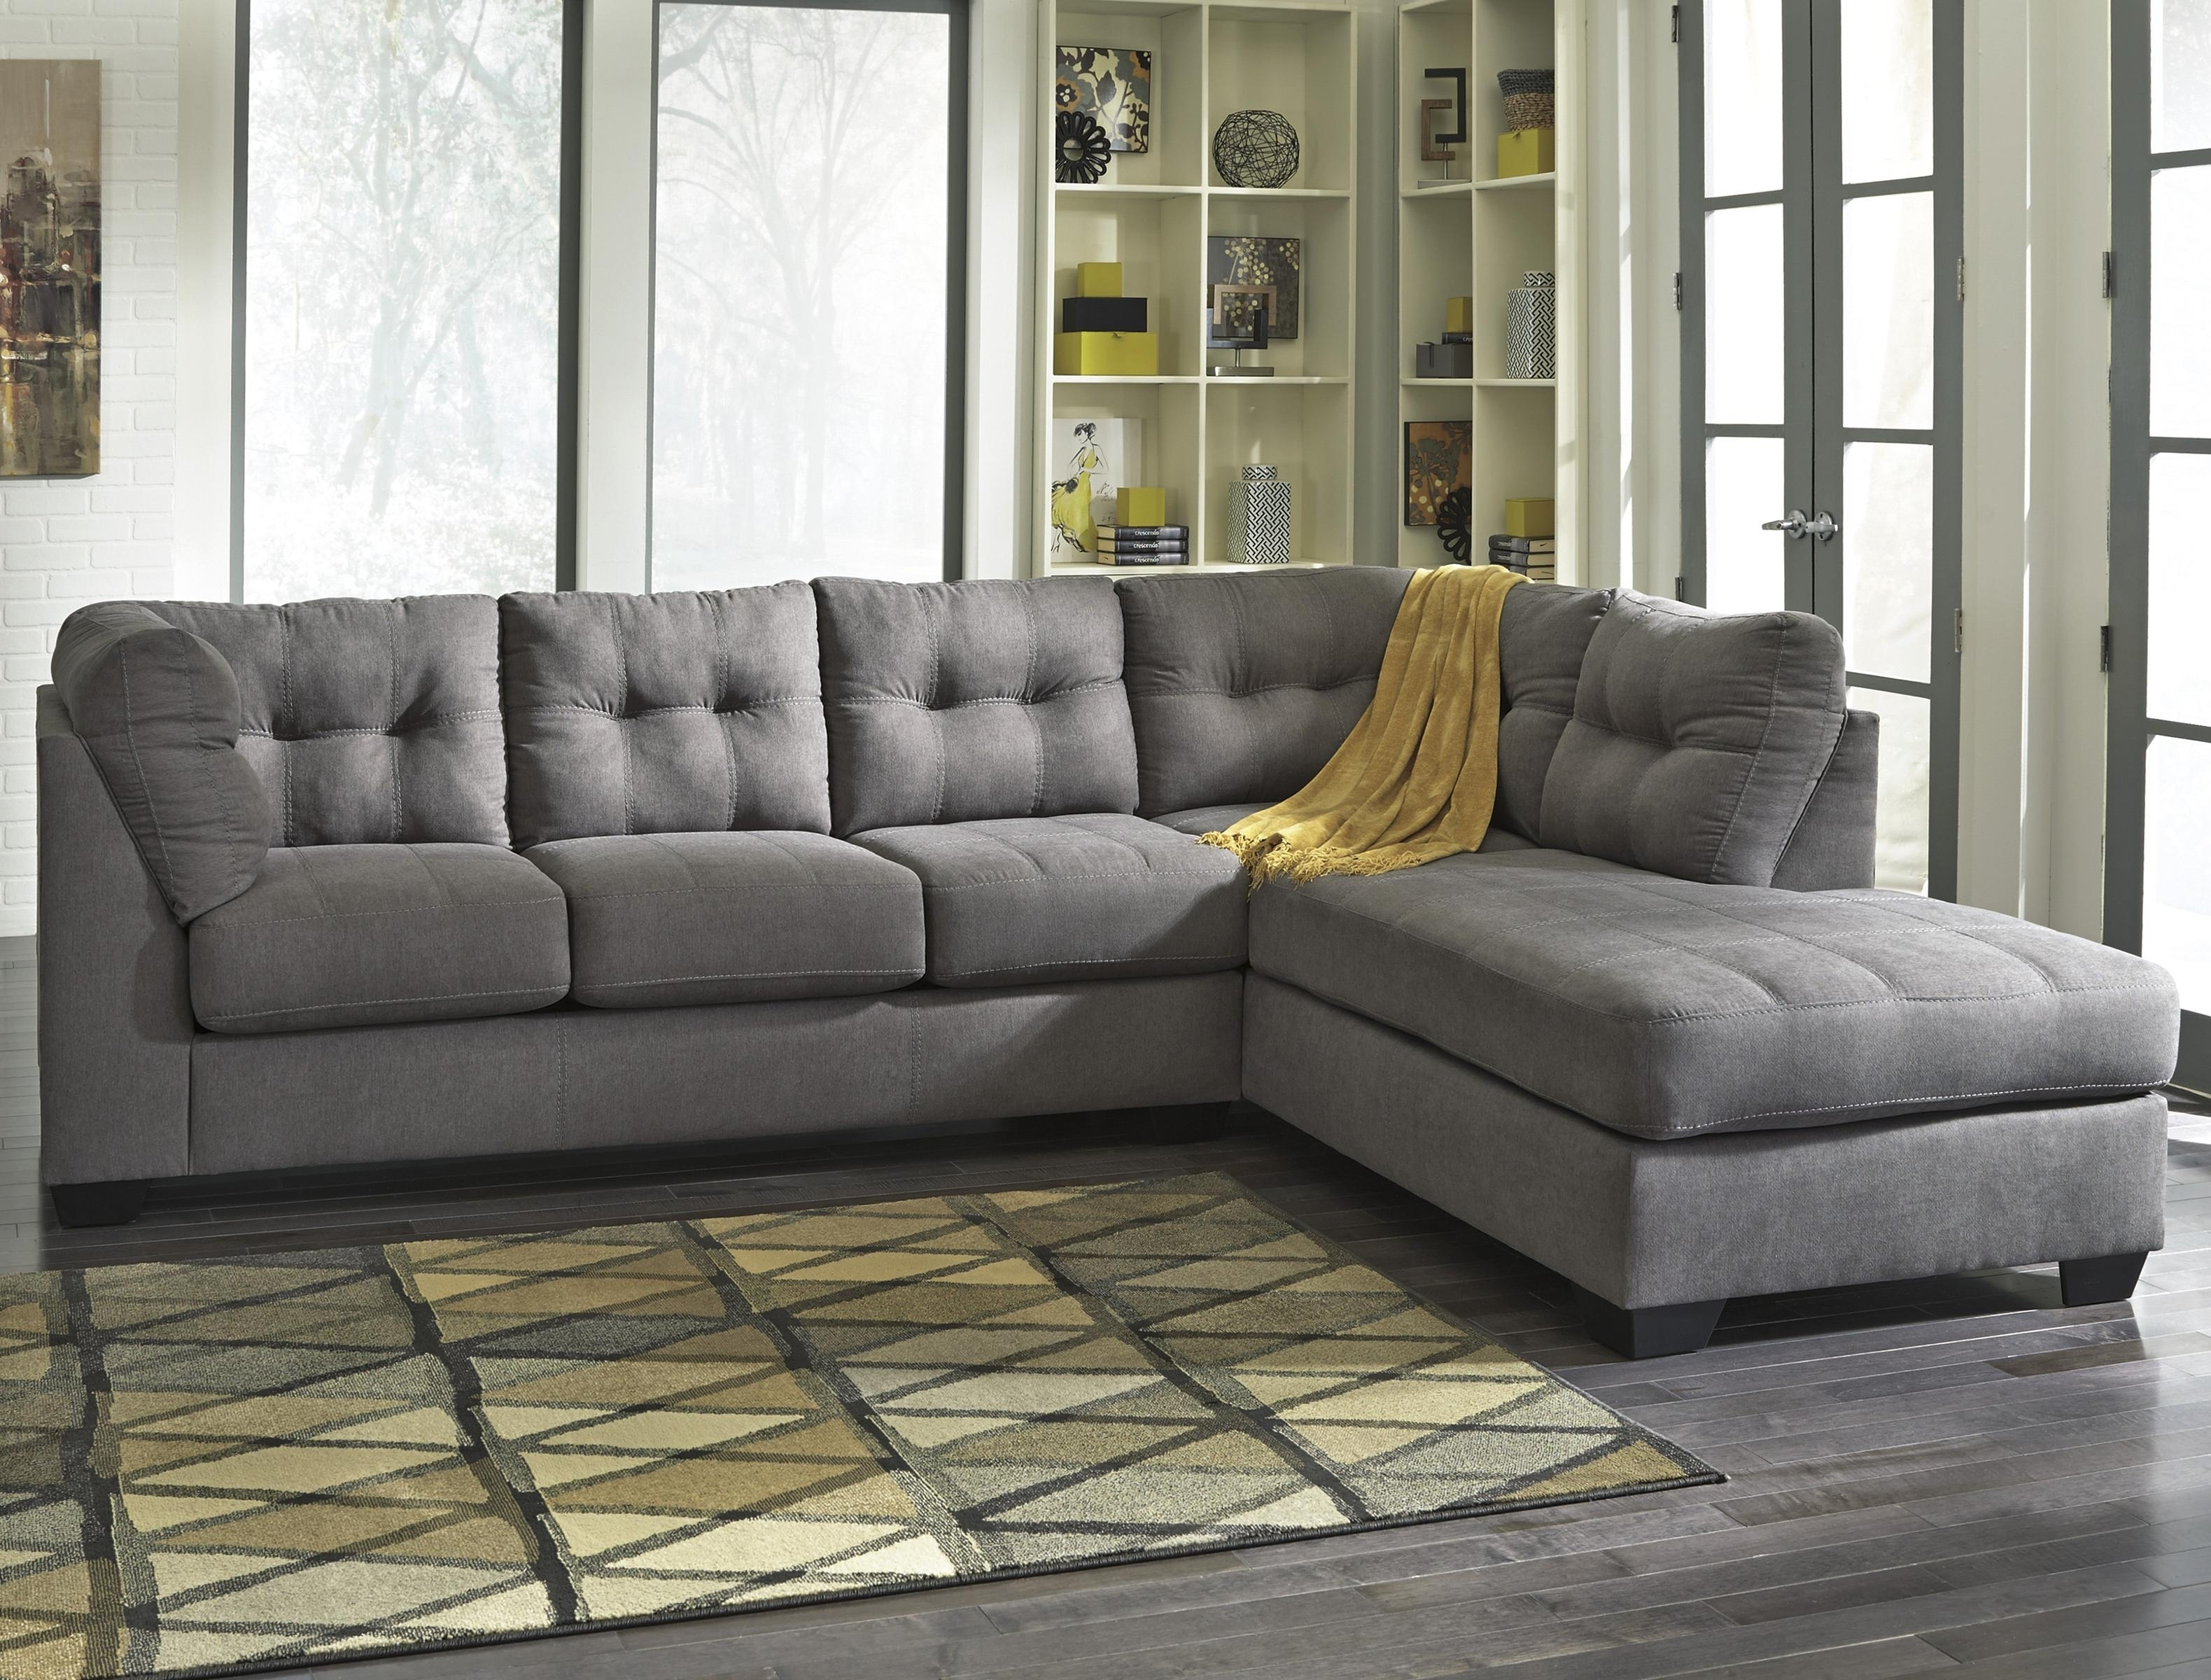 Incredible Sectional Sofas Maryland – Mediasupload With Regard To Maryland Sofas (View 7 of 10)